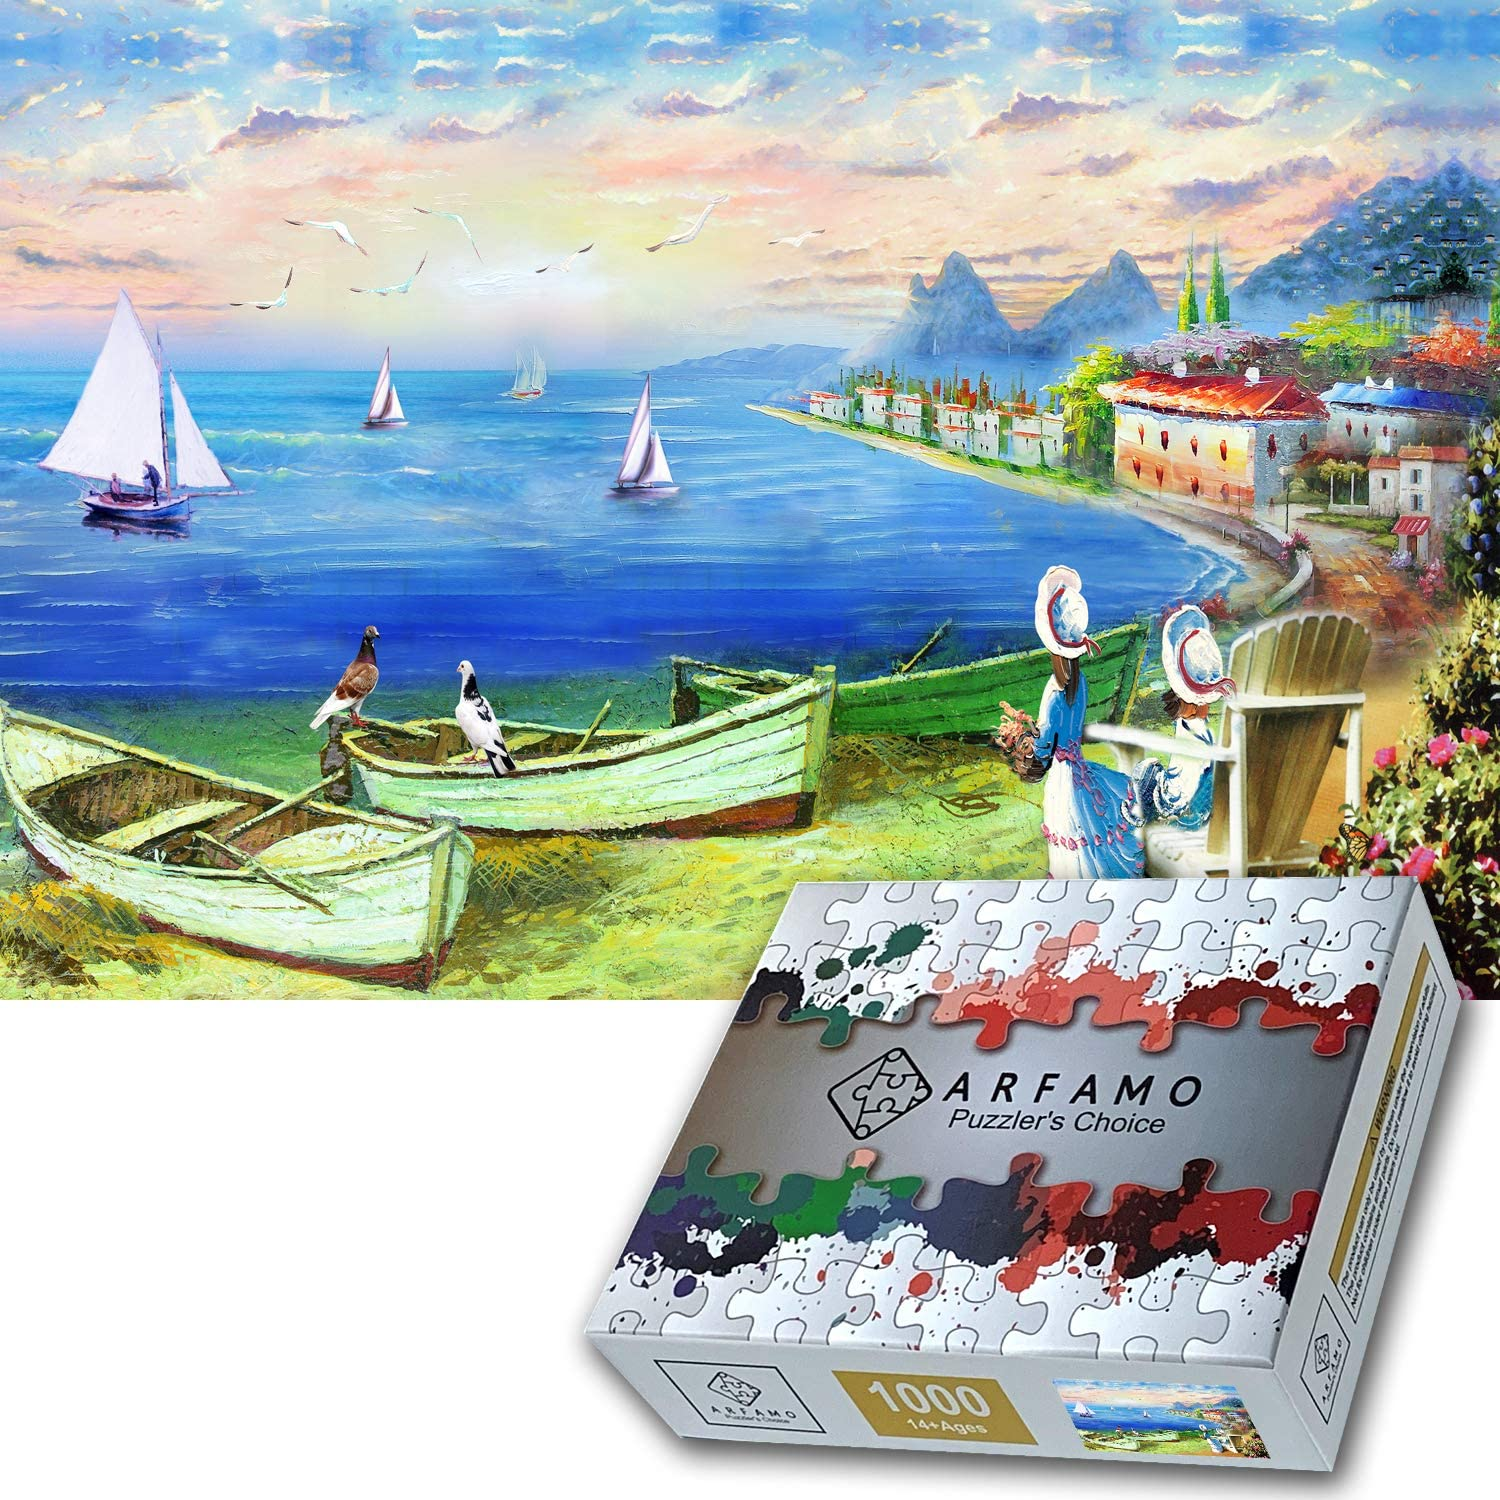 Arfamo Puzzles for Adults 1000 Piece Jigsaw Puzzles Challenging 1000 Piece Puzzle Educational Family Game DIY Mural Toys Gift for Adults Kids Teens Jigsaw Puzzles(Blue sea)